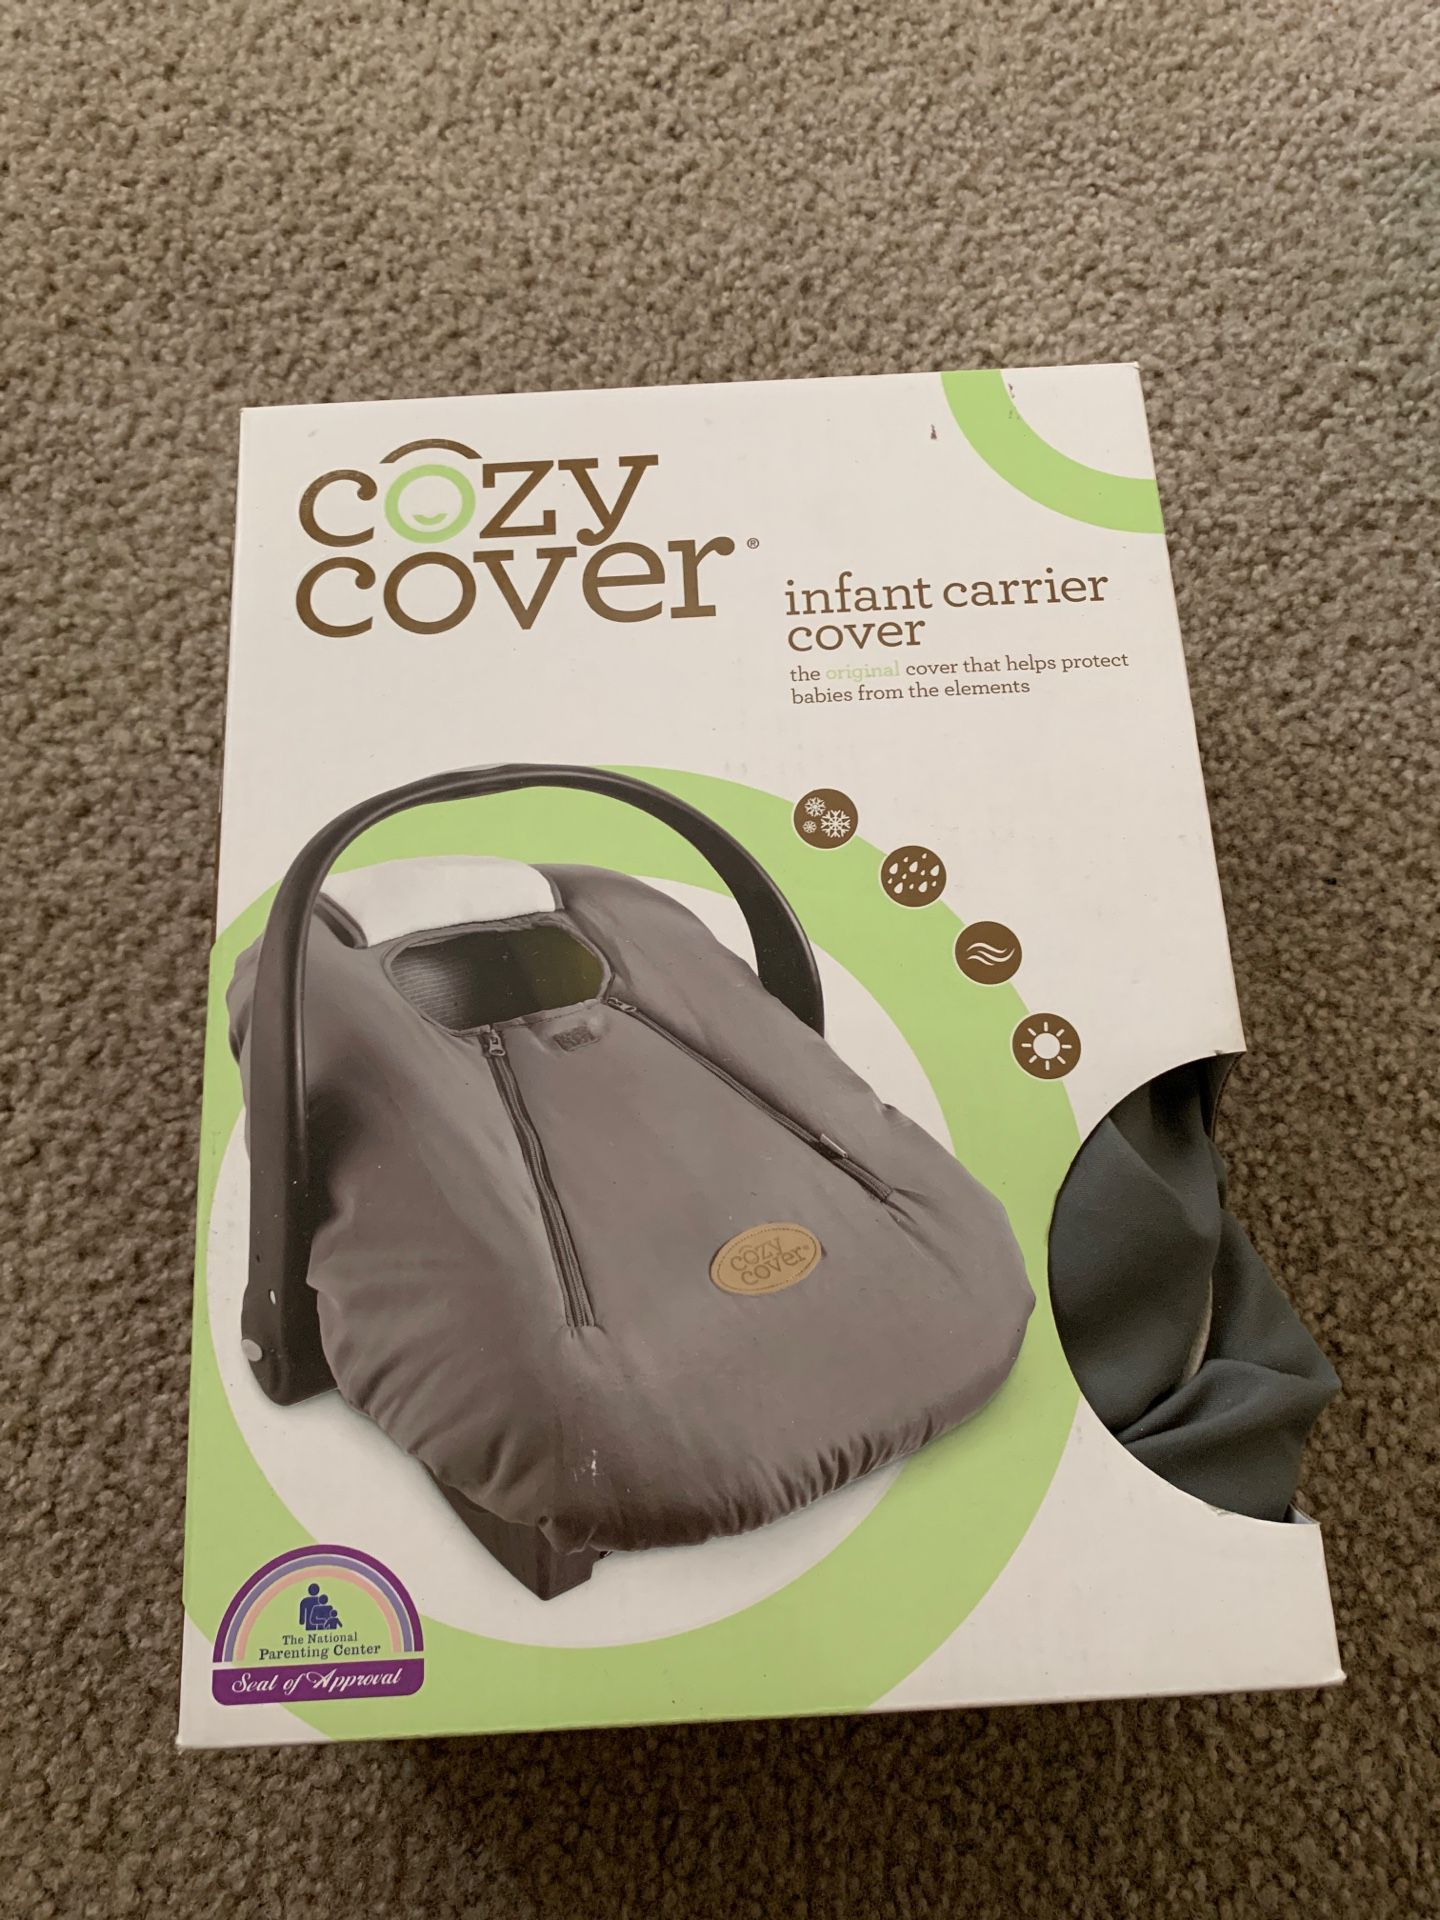 Cozy cover for the cold!